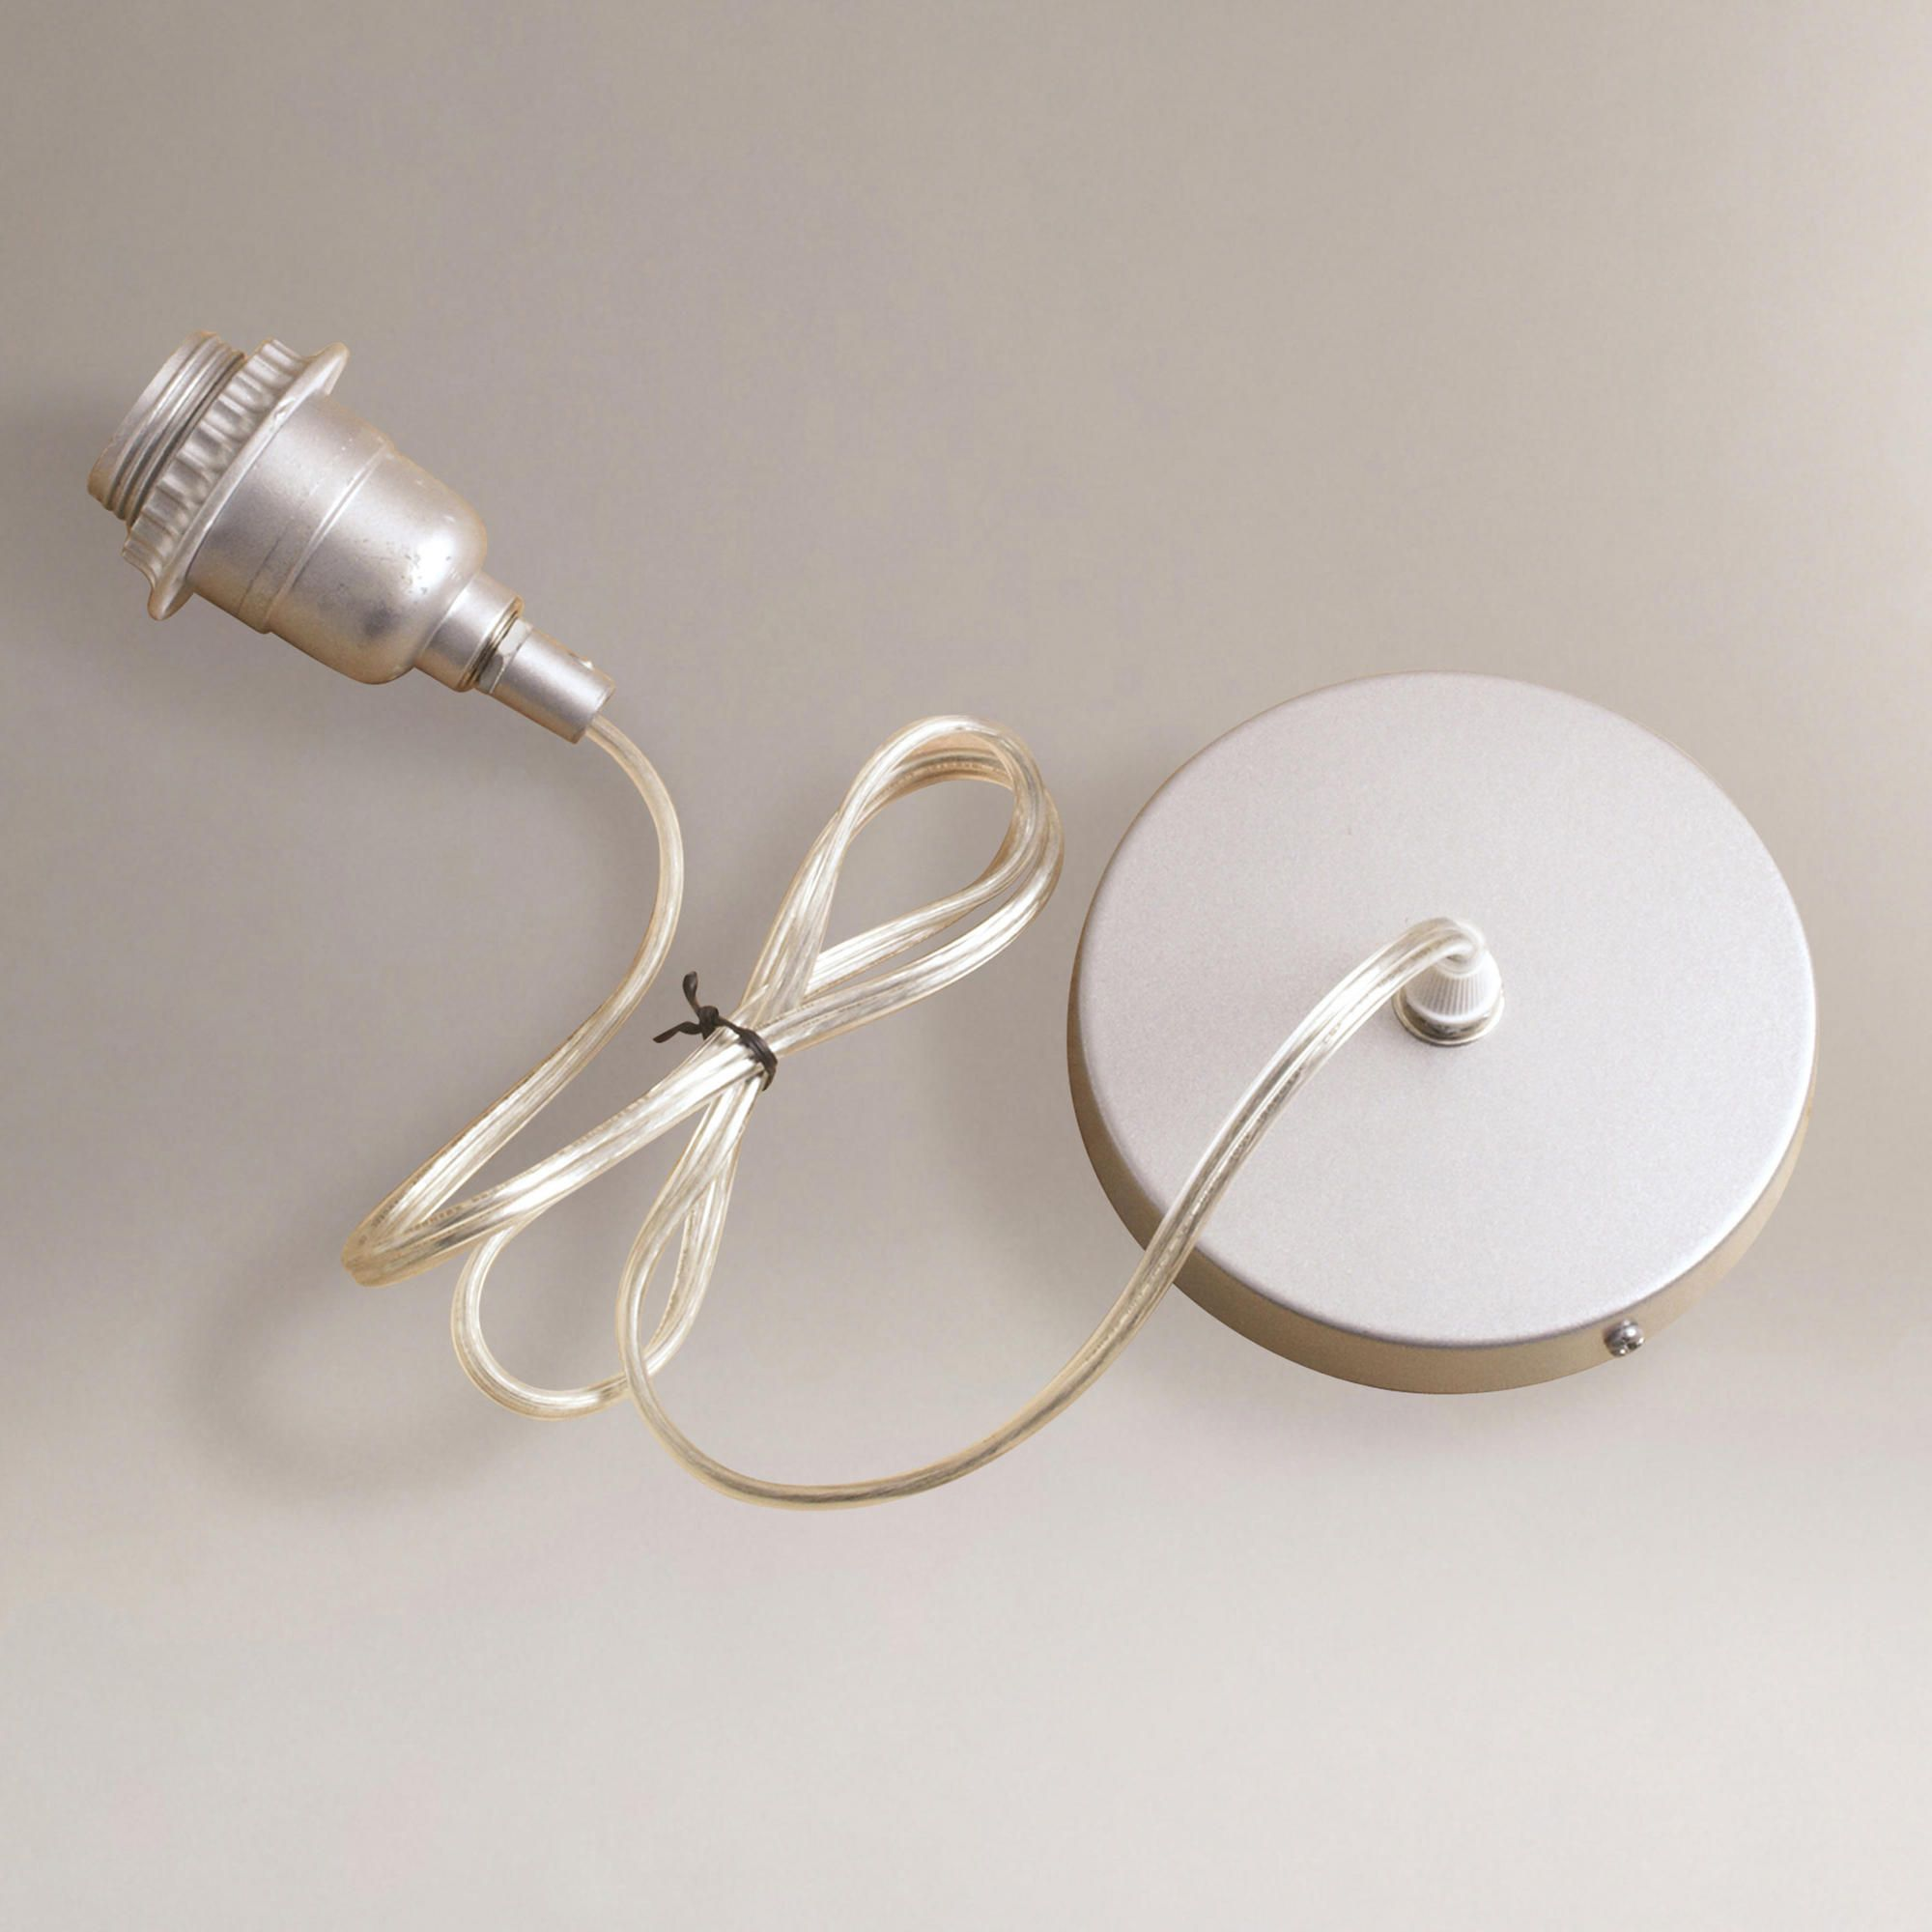 Silver Electrical Ceiling Hardwire Kit World Market In